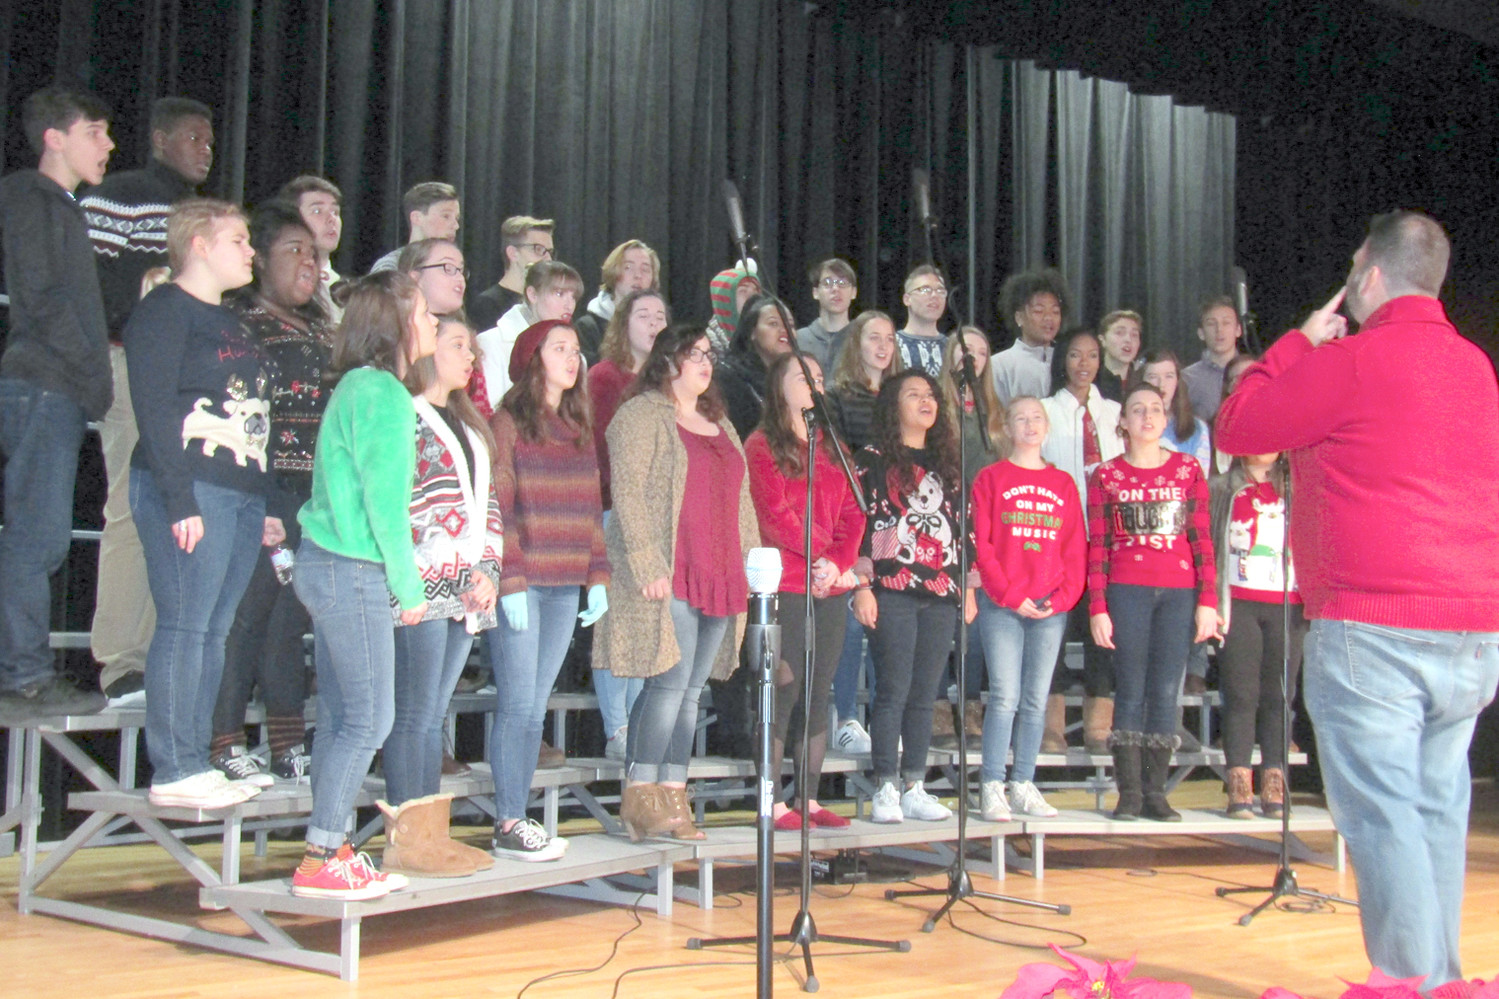 The Cleveland High School Renaissance Show Choir was the musical opener for the finale of WCLE's Empty Stocking Fund drive finale on Friday.